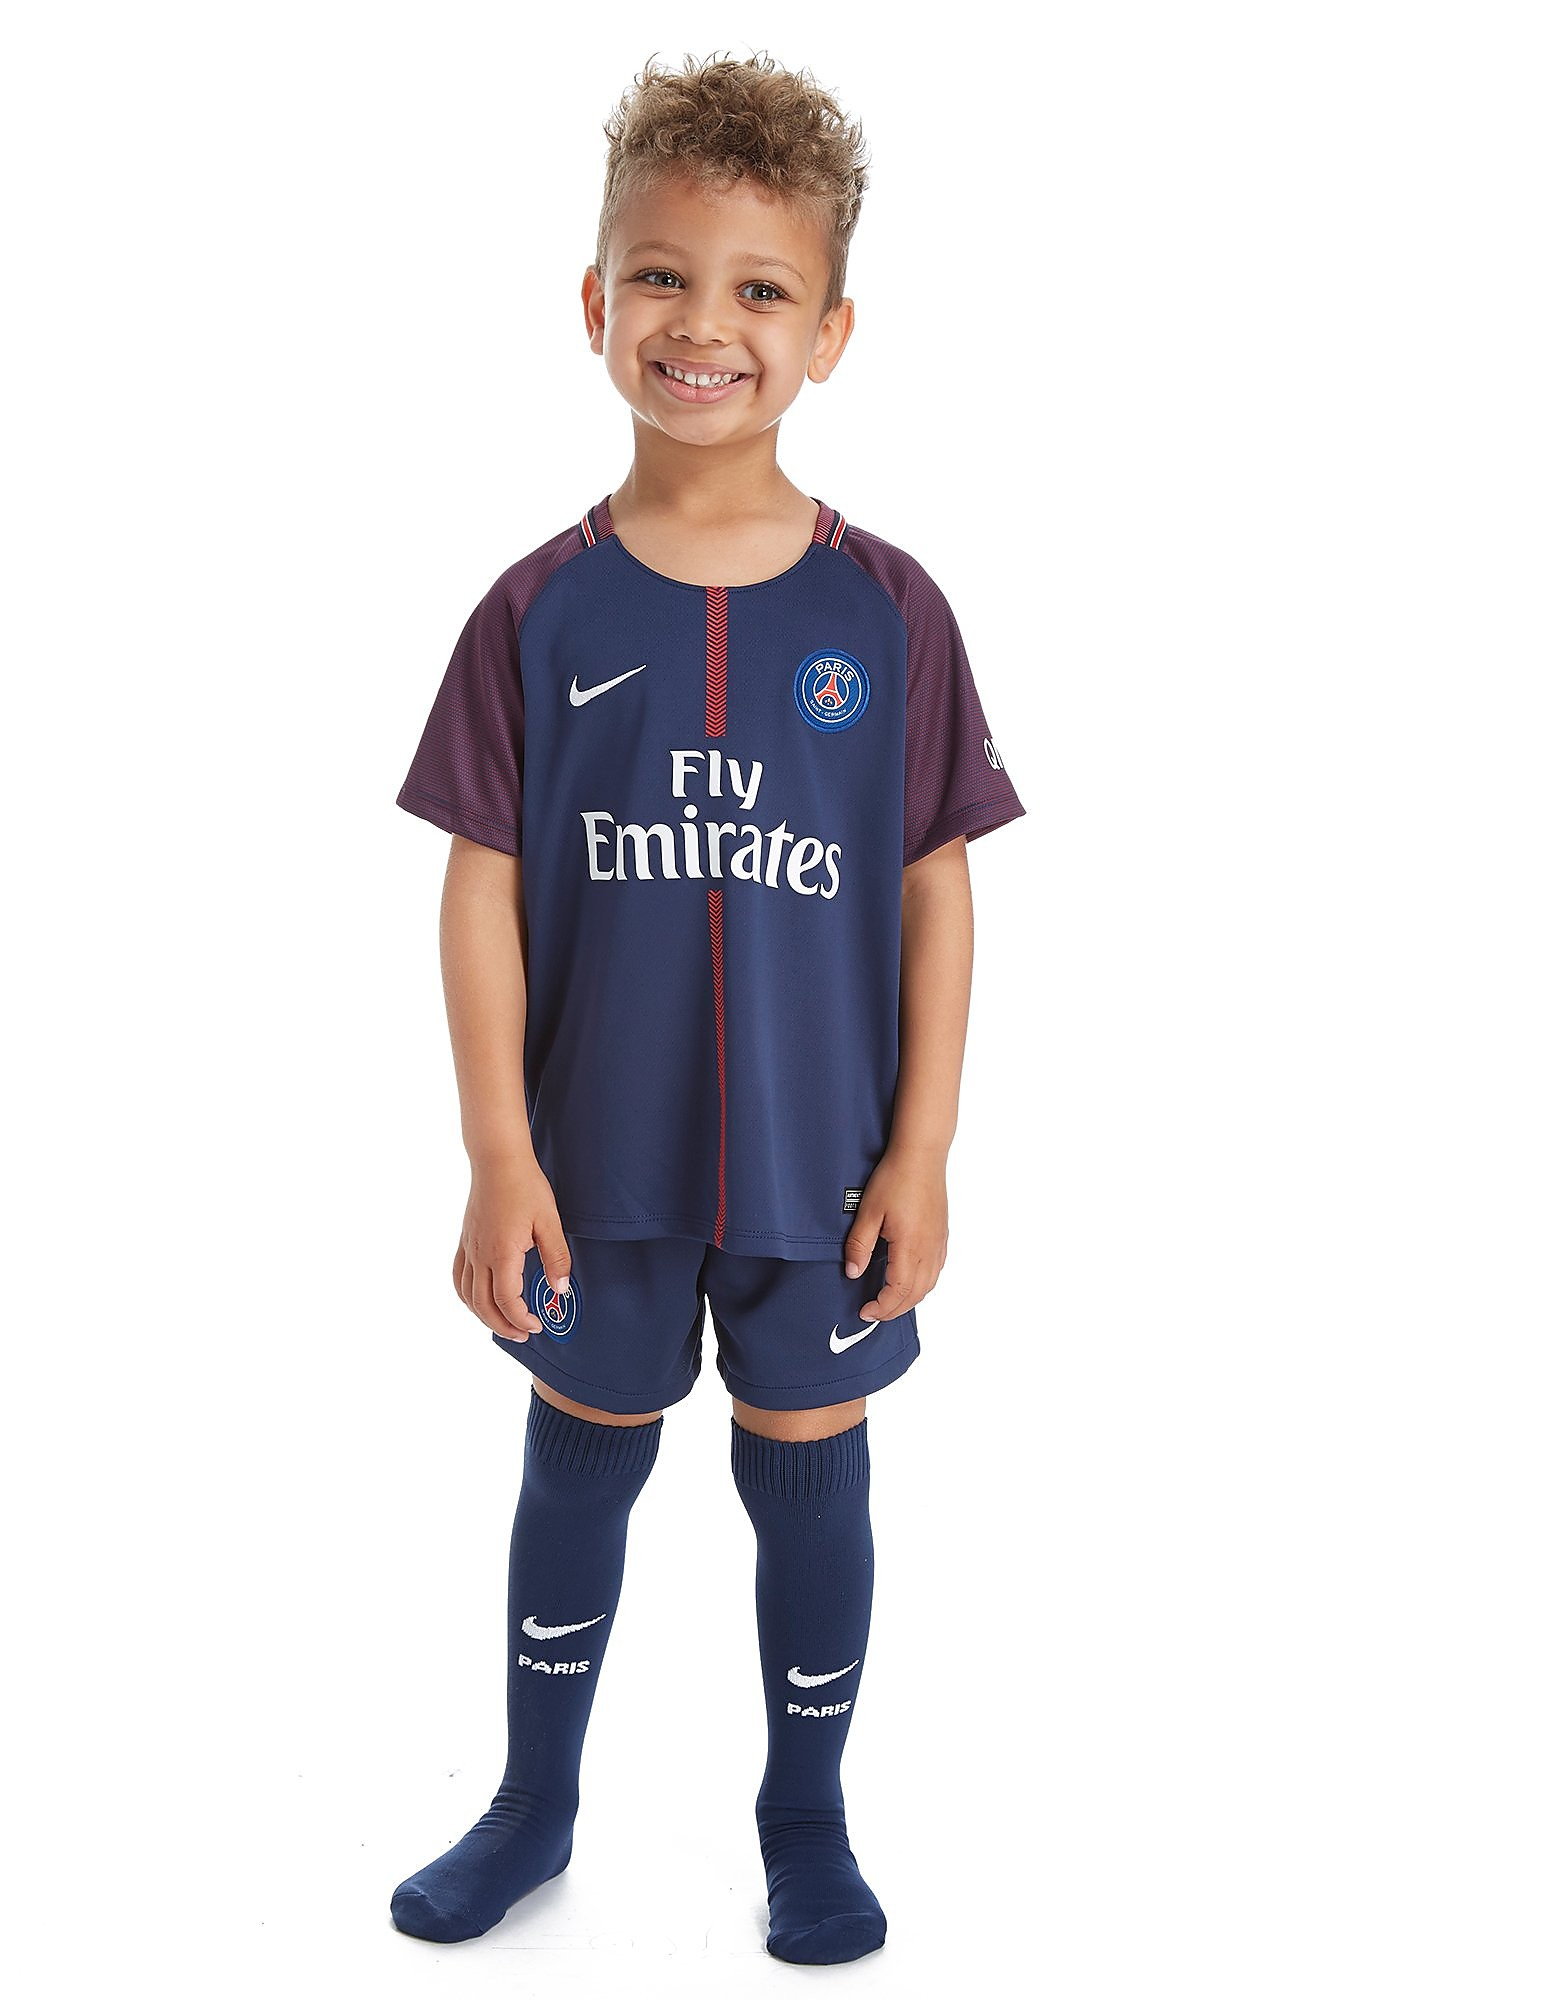 Nike Paris Saint Germain 2017/18 Home Kit Children